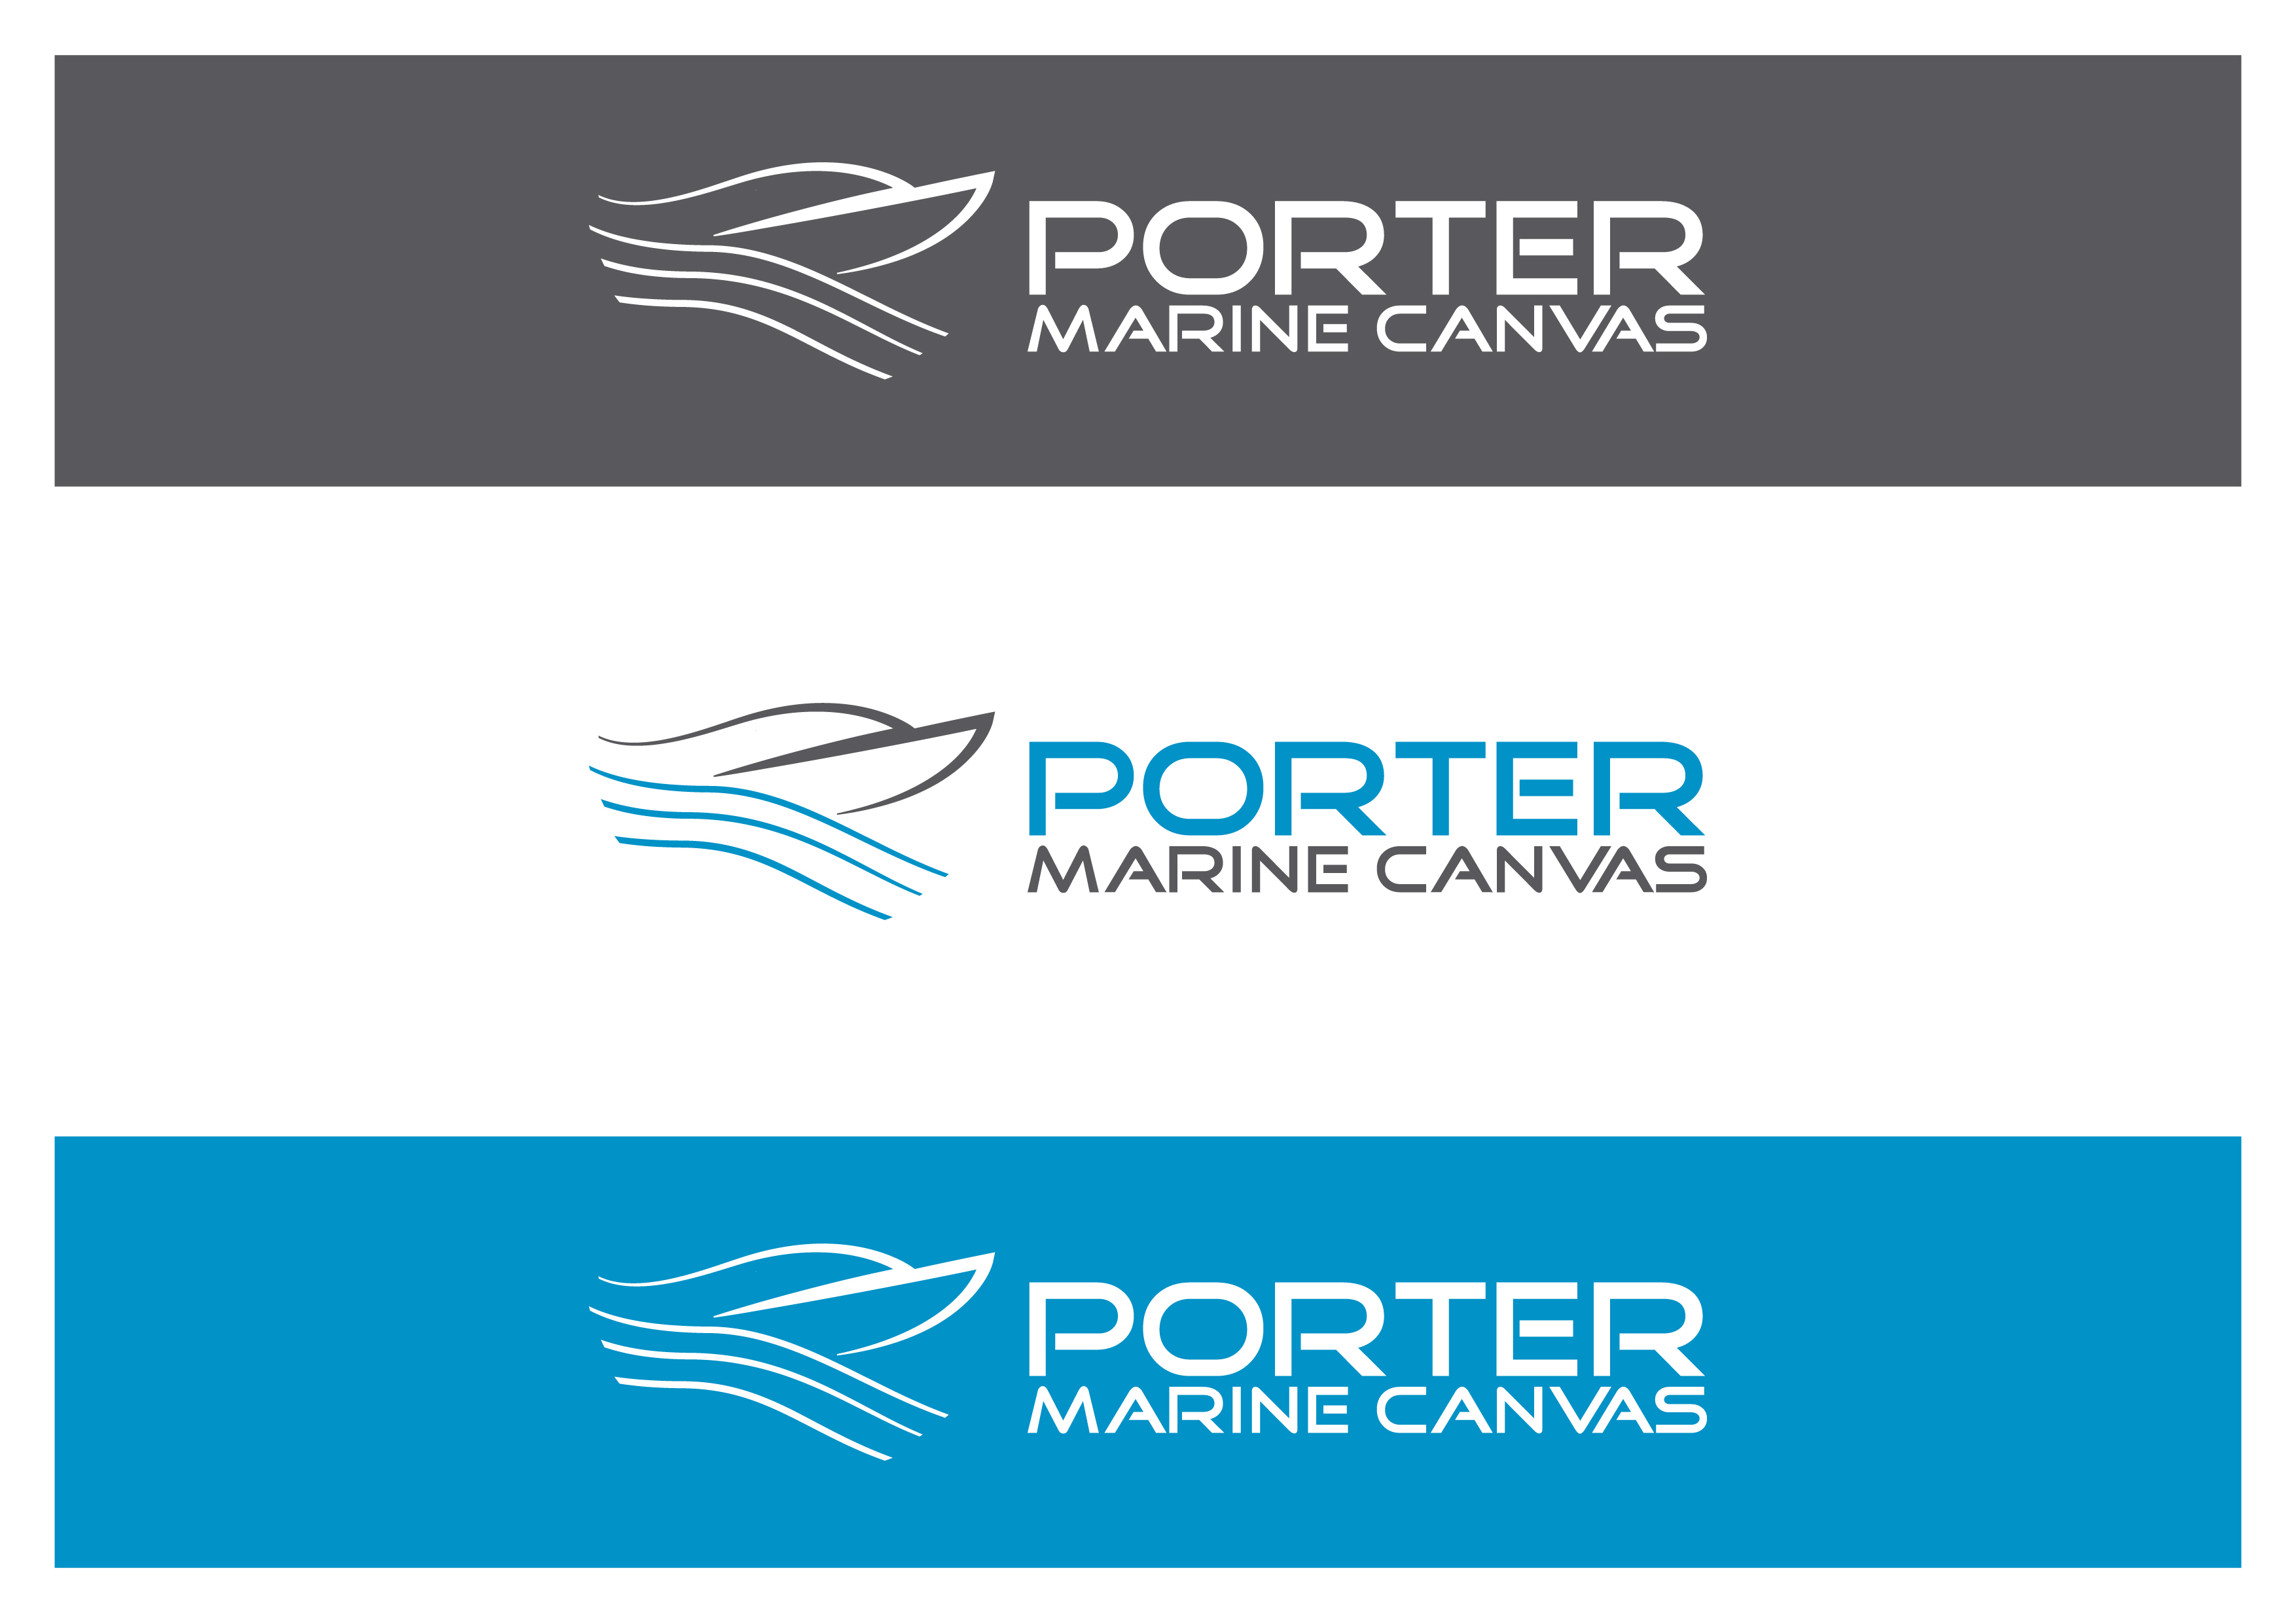 Logo Design by 3draw - Entry No. 229 in the Logo Design Contest Imaginative Logo Design for Porter Marine Canvas.